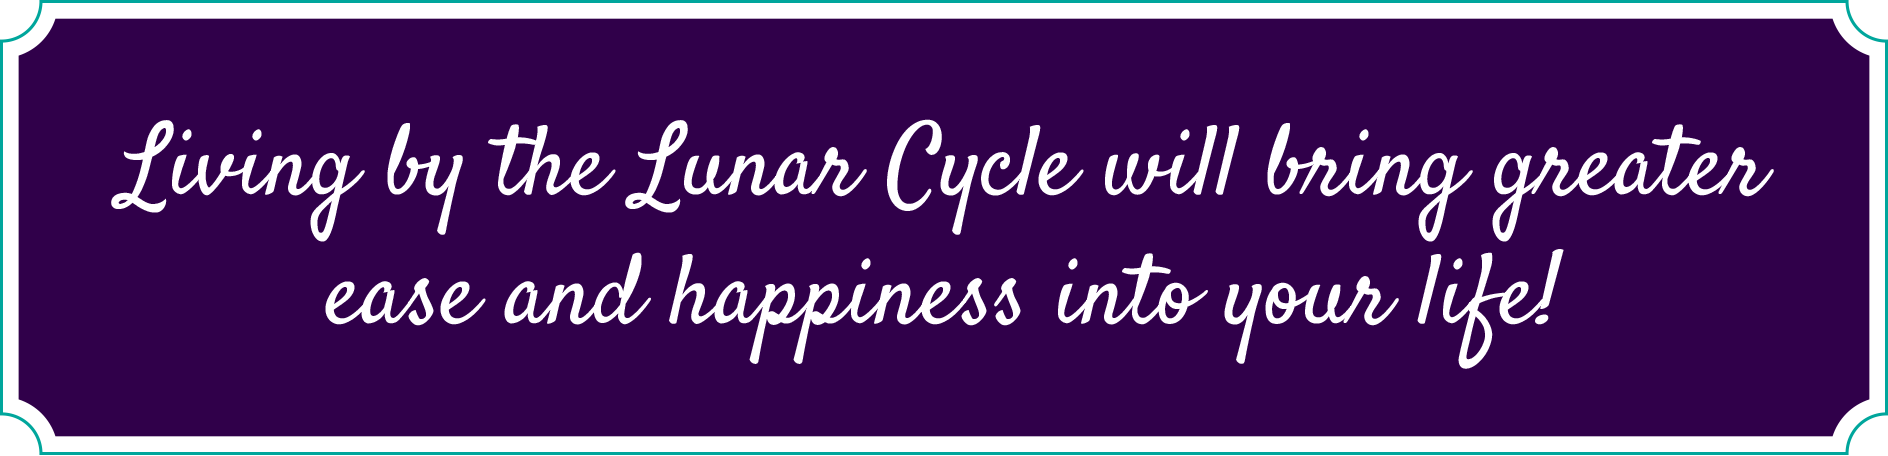 Living by the Lunar Cycle will bring greater ease and happiness into your life!